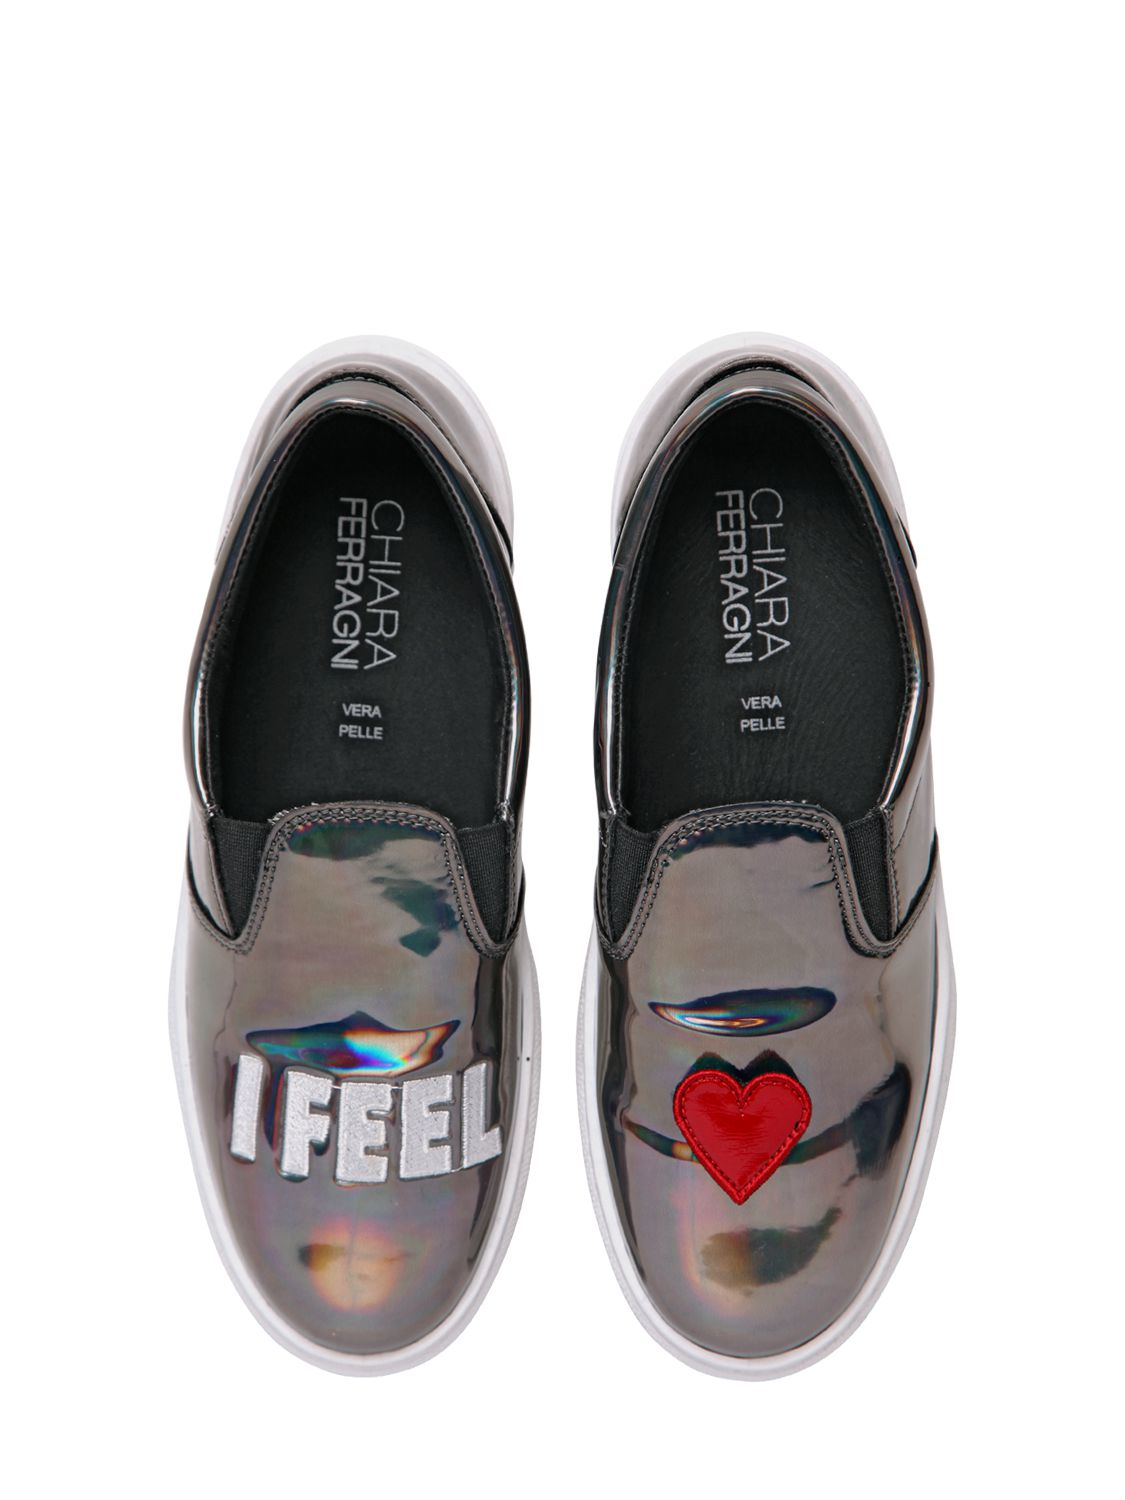 chiara ferragni 30mm i feel iridescent leather shoes in metallic lyst. Black Bedroom Furniture Sets. Home Design Ideas